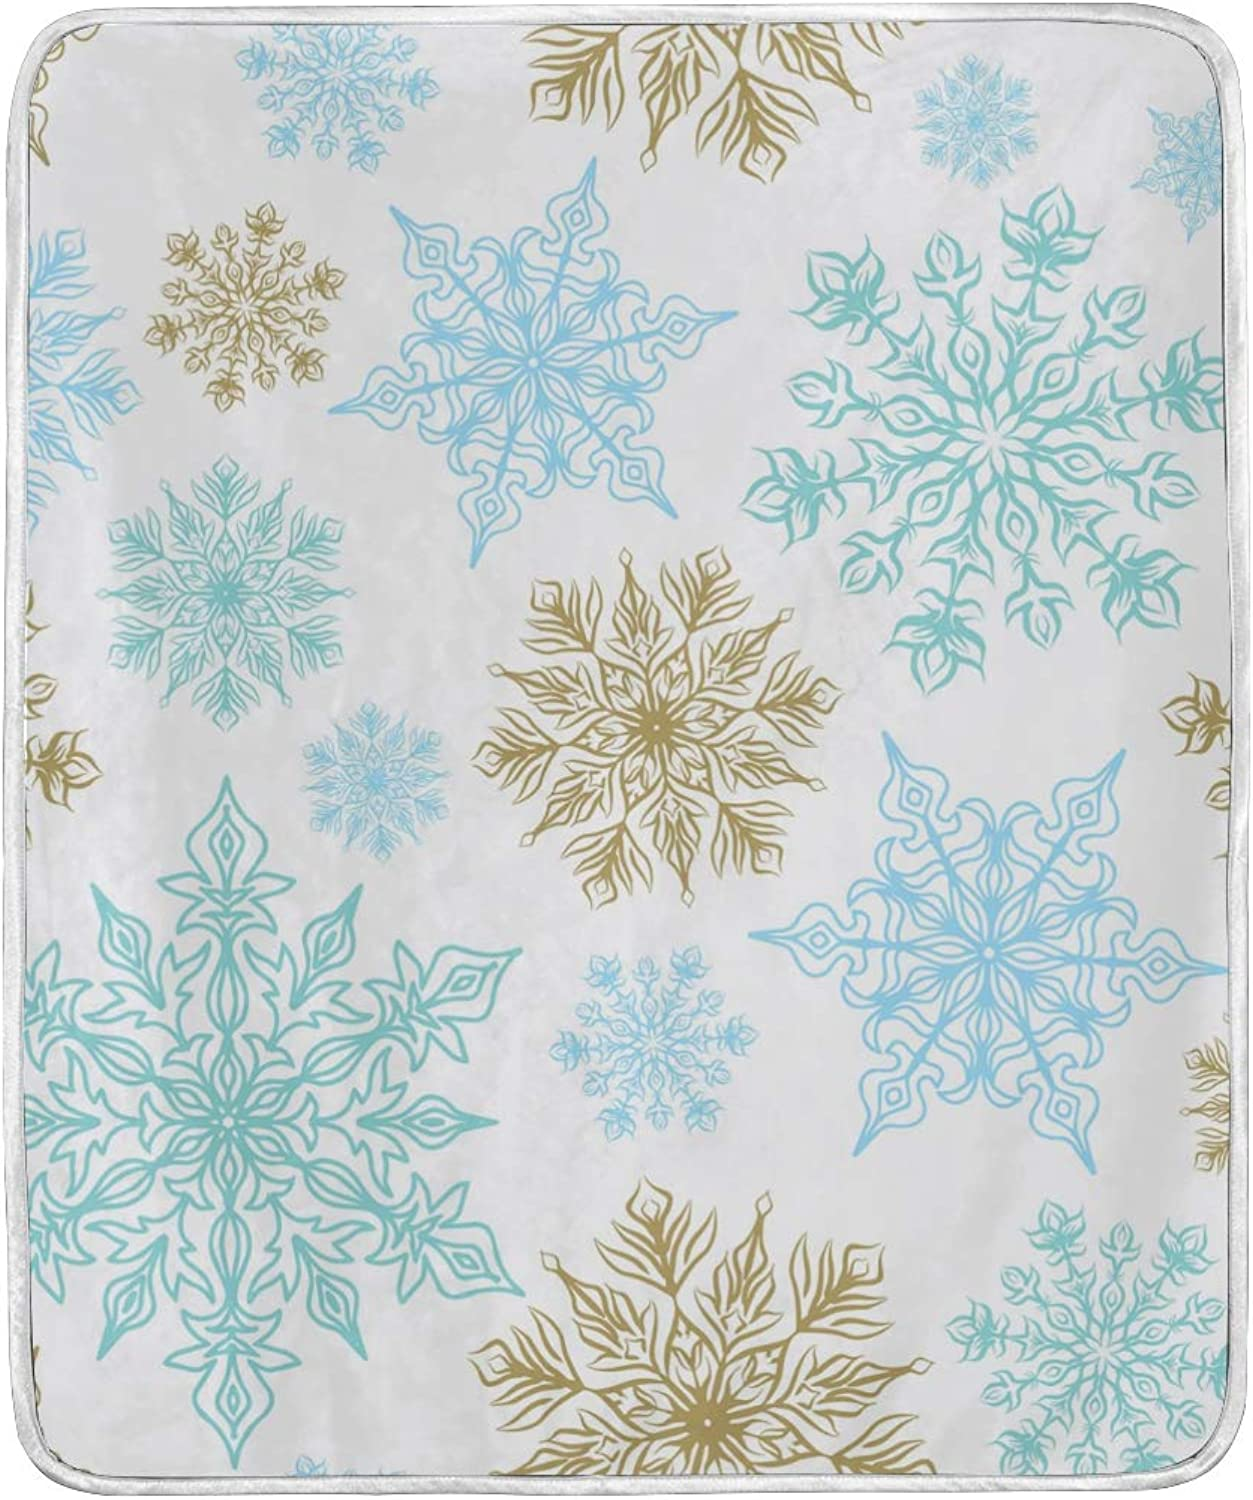 Christmas Year Winter Snowflakes Throw Blanket Soft Nap Couch Bed Blankets Kid Boy Girl Women Men 50x60 inch